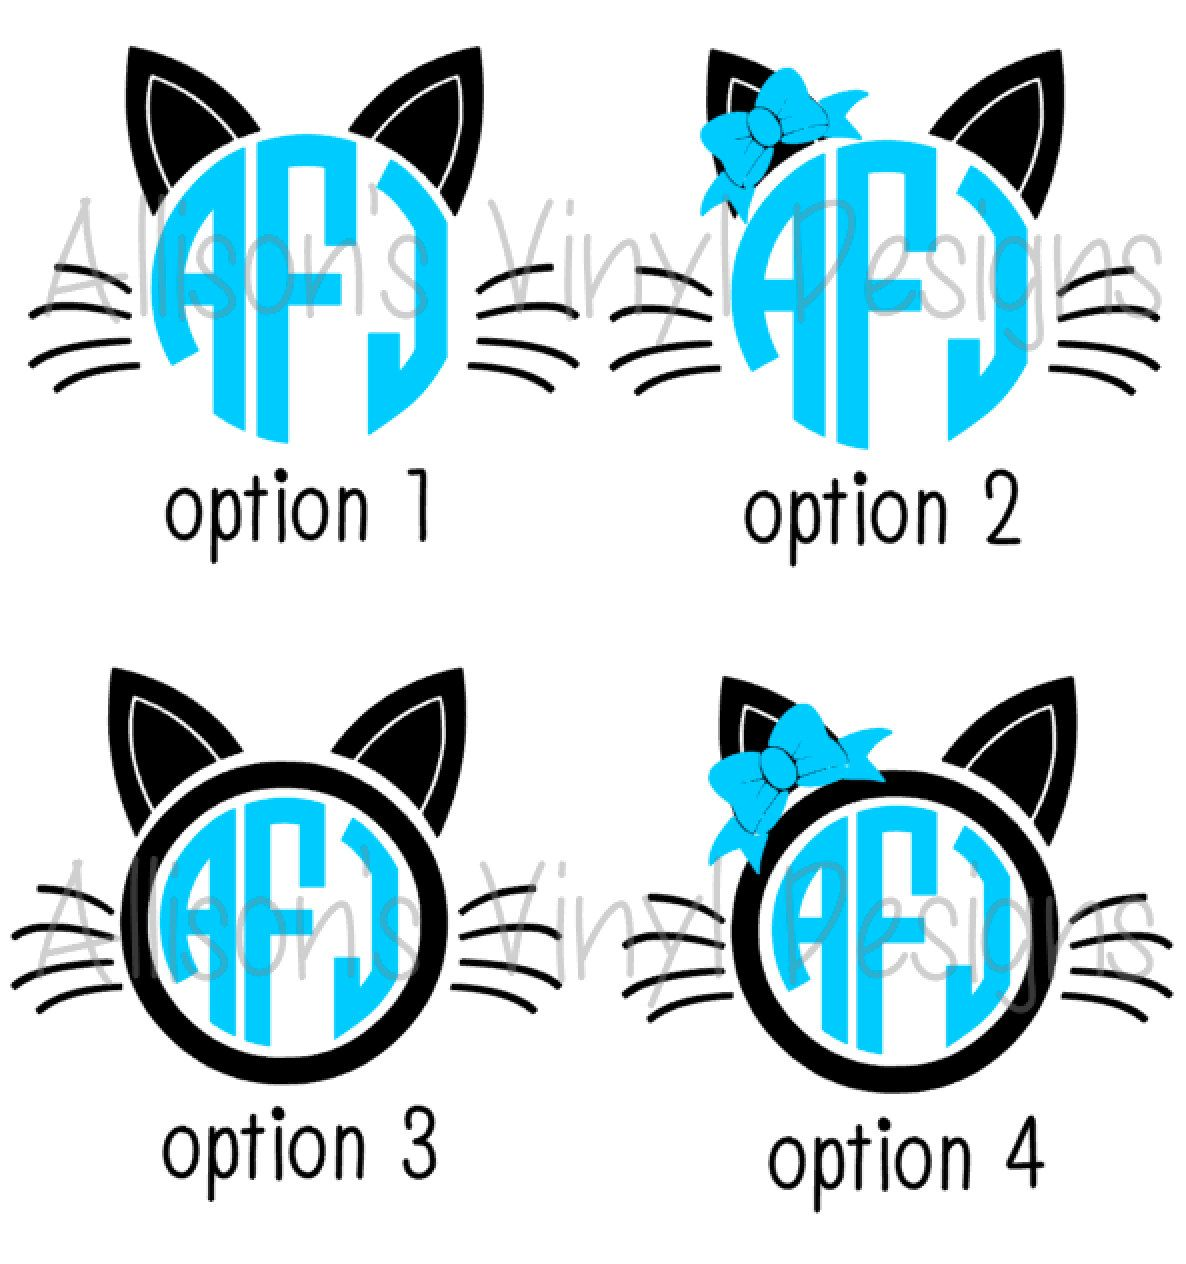 Cat Monogram Decal Monogram Cat Decal Monogram Car Decal - Vinyl decal cat pinterest